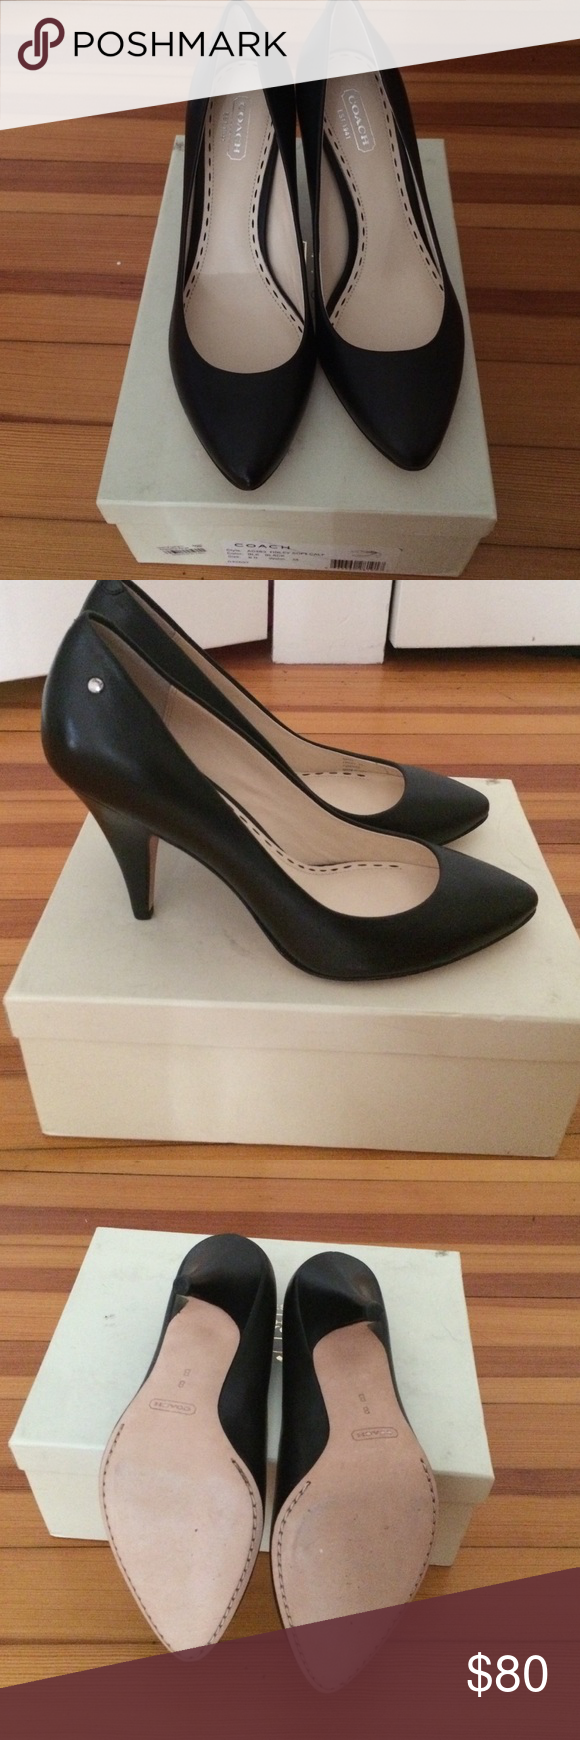 Coach brand new high heels !!!! Brand new !! Never worn it , with box Coach Shoes Heels